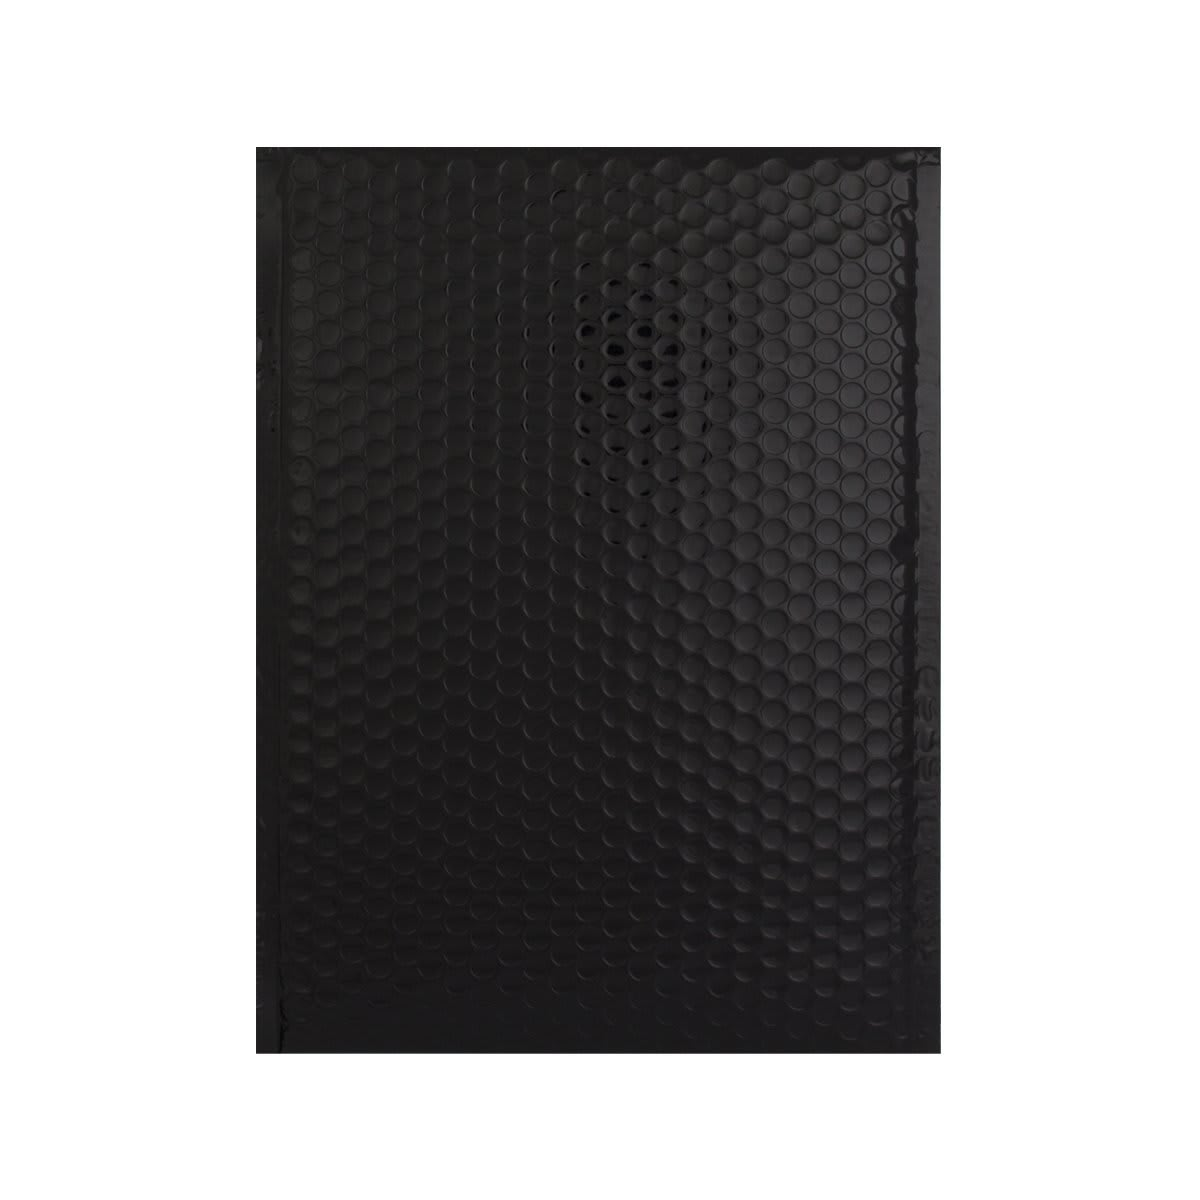 C4 GLOSS METALLIC BLACK PADDED ENVELOPES (324 x 230MM)